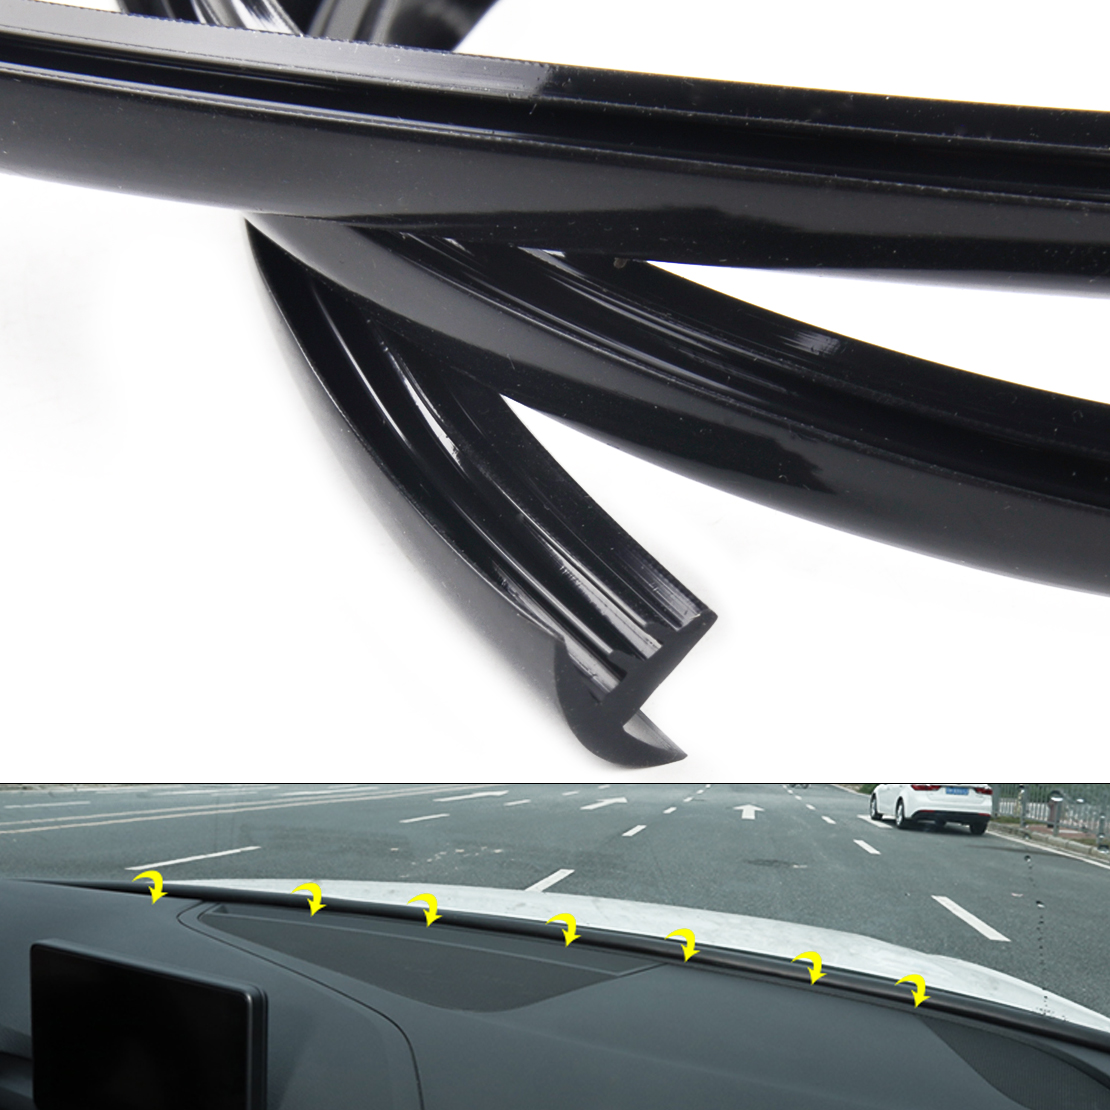 CITALL 1.6M Black Car Auto T-shape Soundproof Dustproof Car Dashboard Windshield Anti-dust Sealing Strip Trim